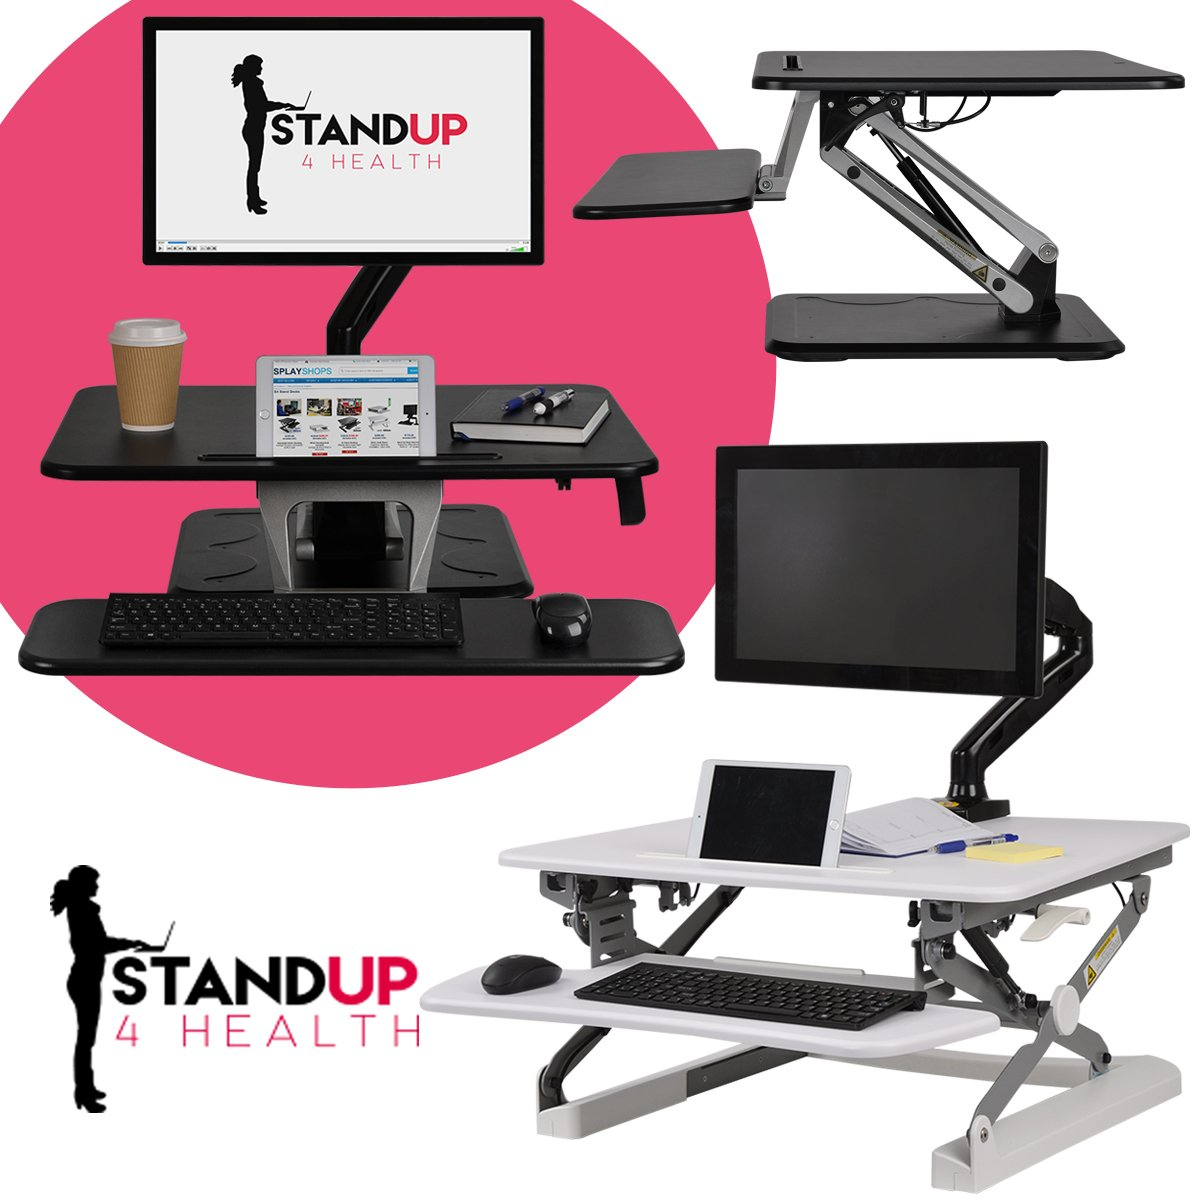 The health benefits of having a Sit-Stand up desk are endless but here are just a few:  1. Alleviate back pain 2. Increase blood flow 3. Burn calories 4. Increase energy and productivity levels 5. Improve posture  Get yours today! https://t.co/sMOtIyOHJp https://t.co/j9kN6mJyN9